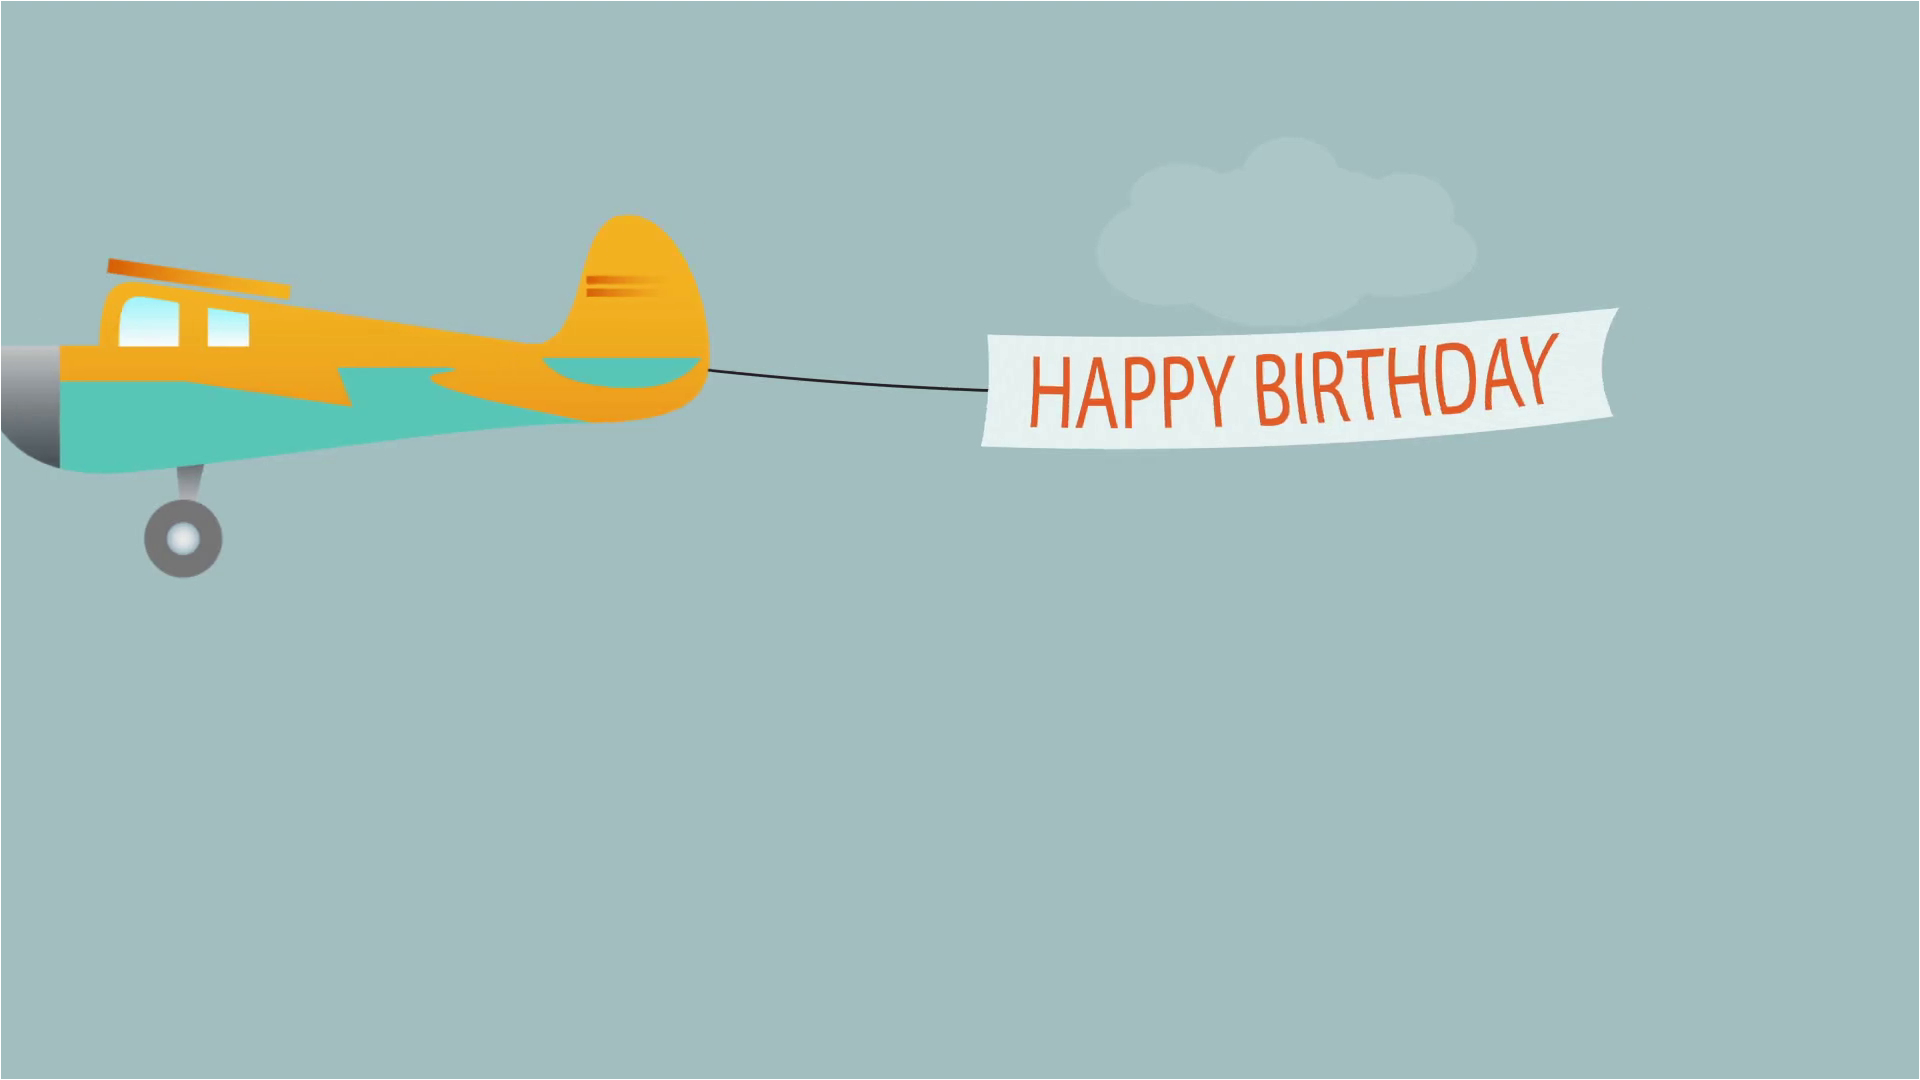 the plane flies with long banners with happy birthday text synkkl8eimjd48owa0